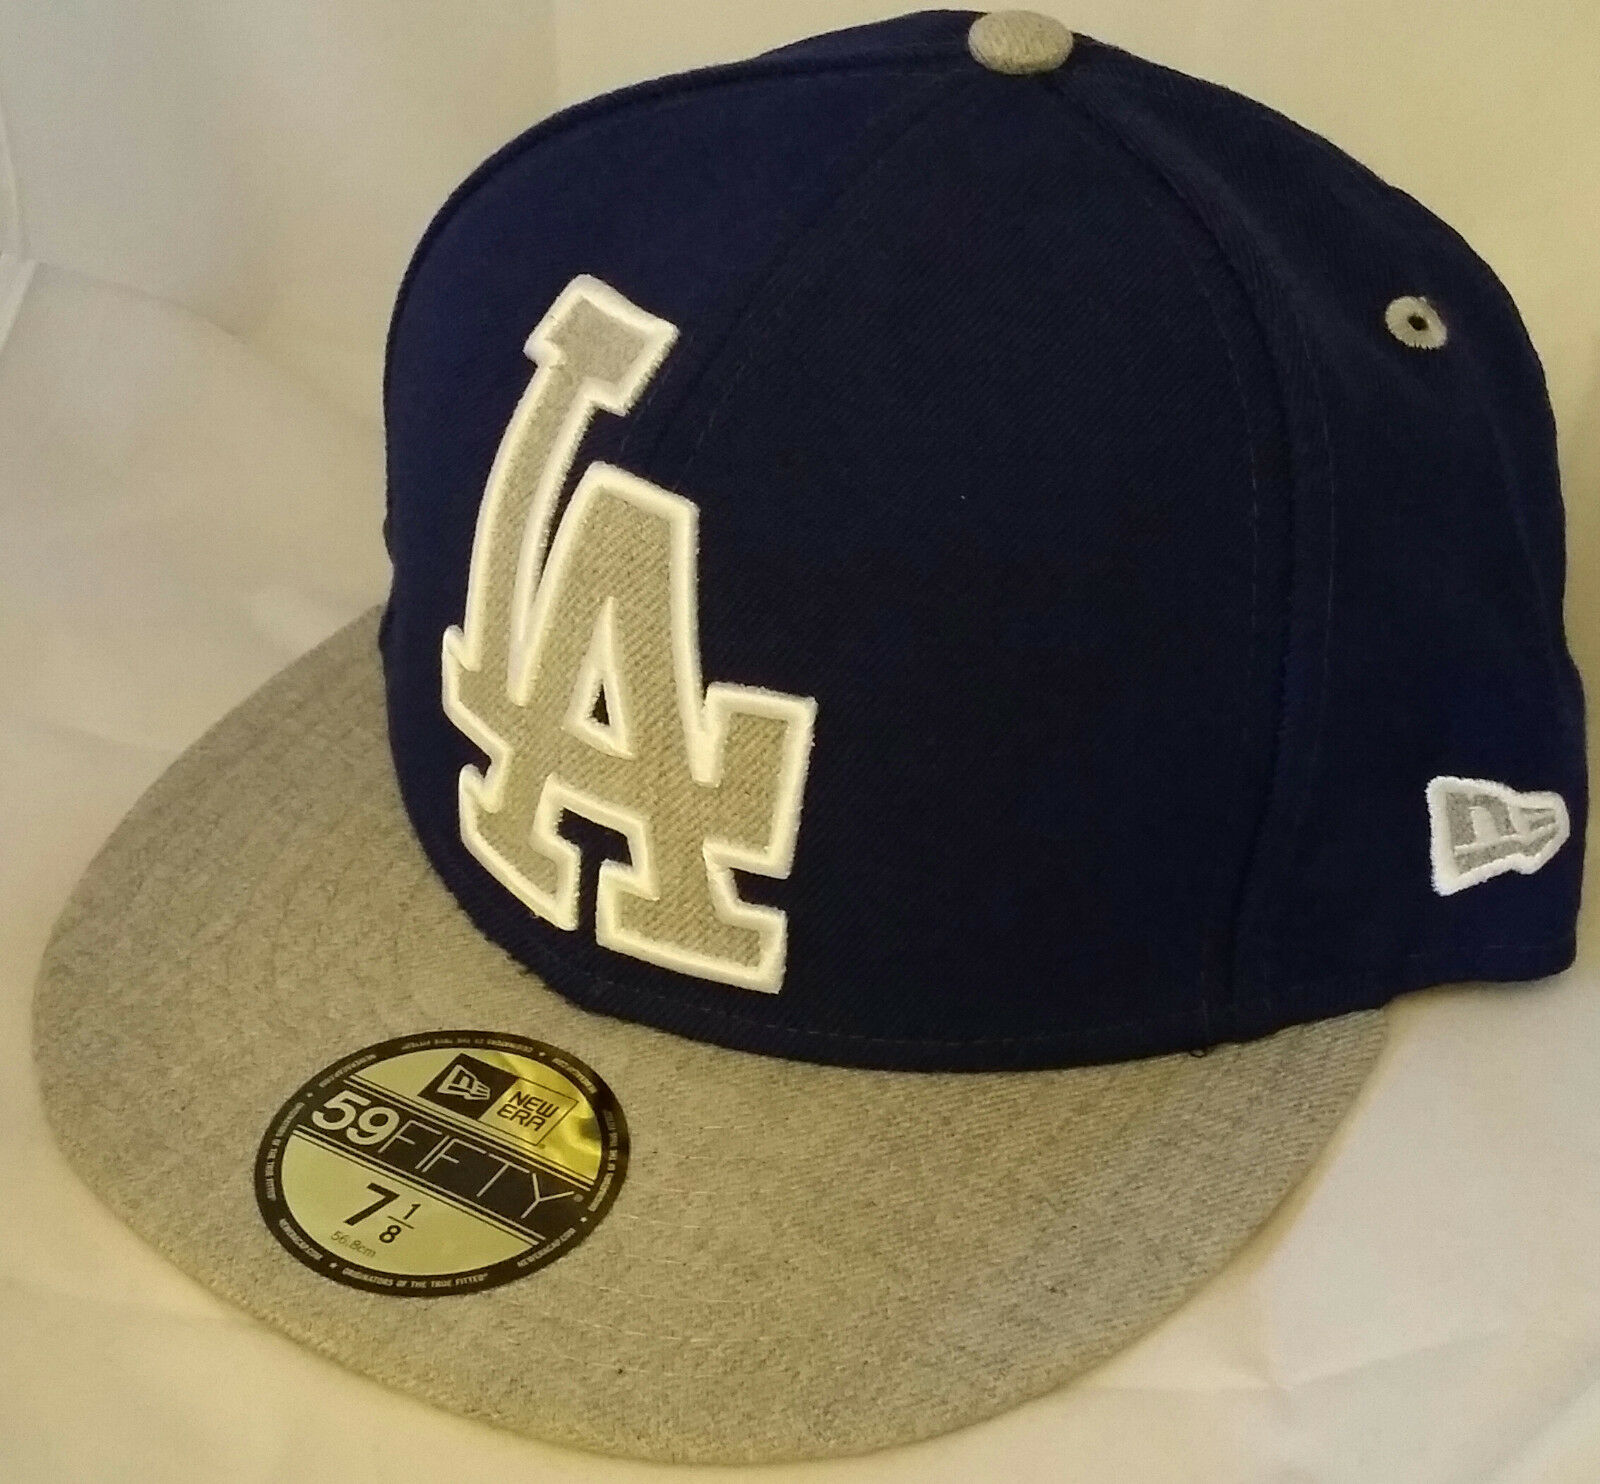 91b97a5312b NWT NEW ERA Los Angeles LA DODGERS CA 59FIFTY size fitted baseball cap hat  mlb 1 of 3Only 3 available ...